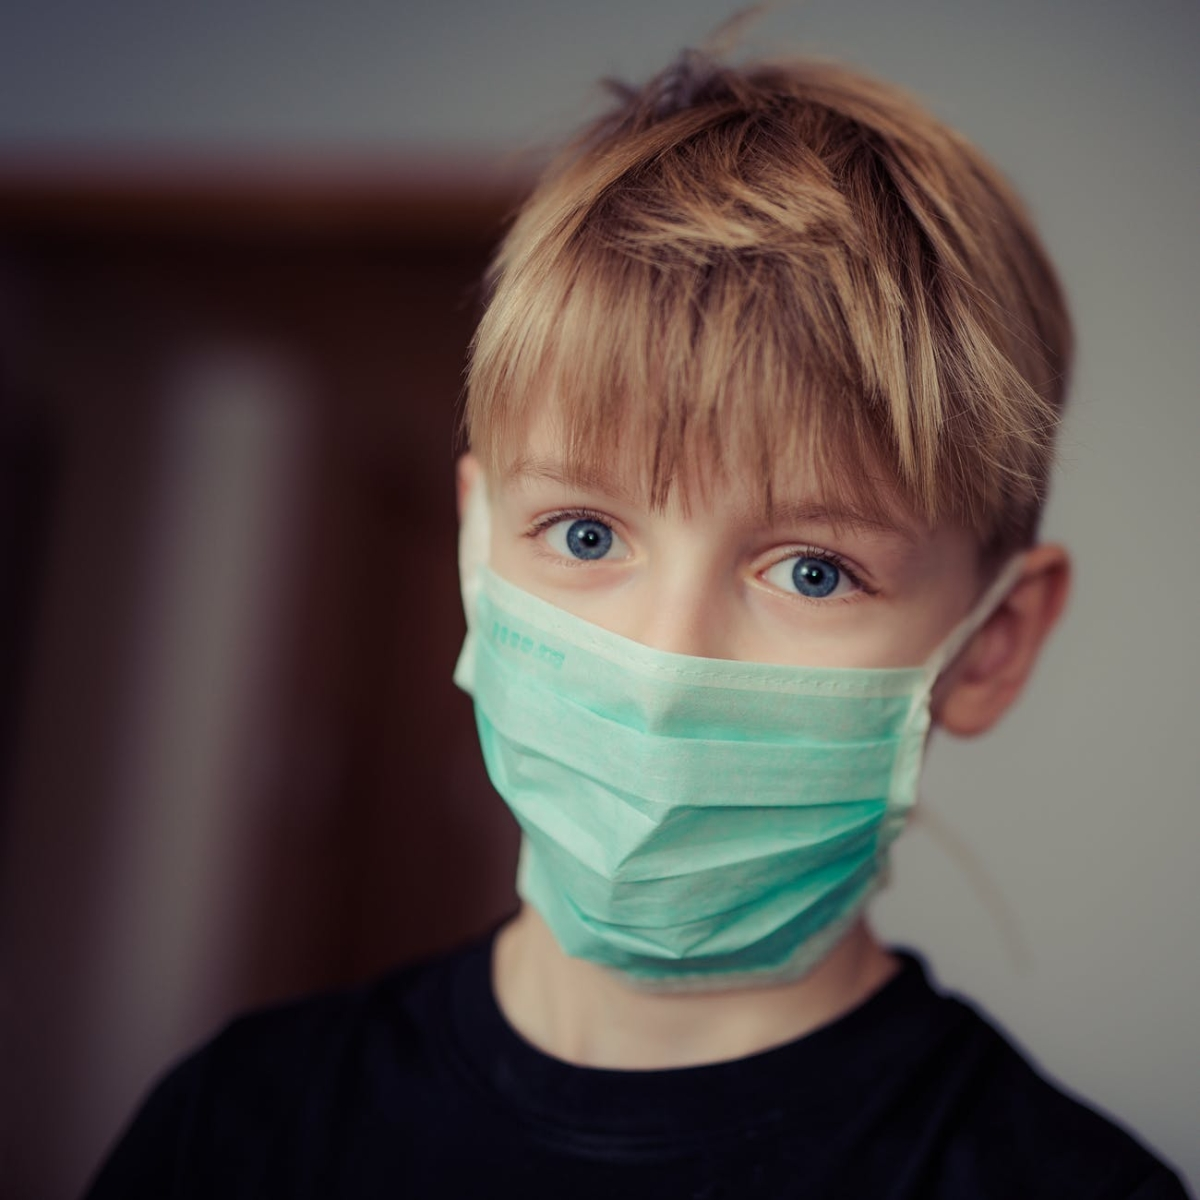 COVID-19 infection in kids may not start with cough: Study